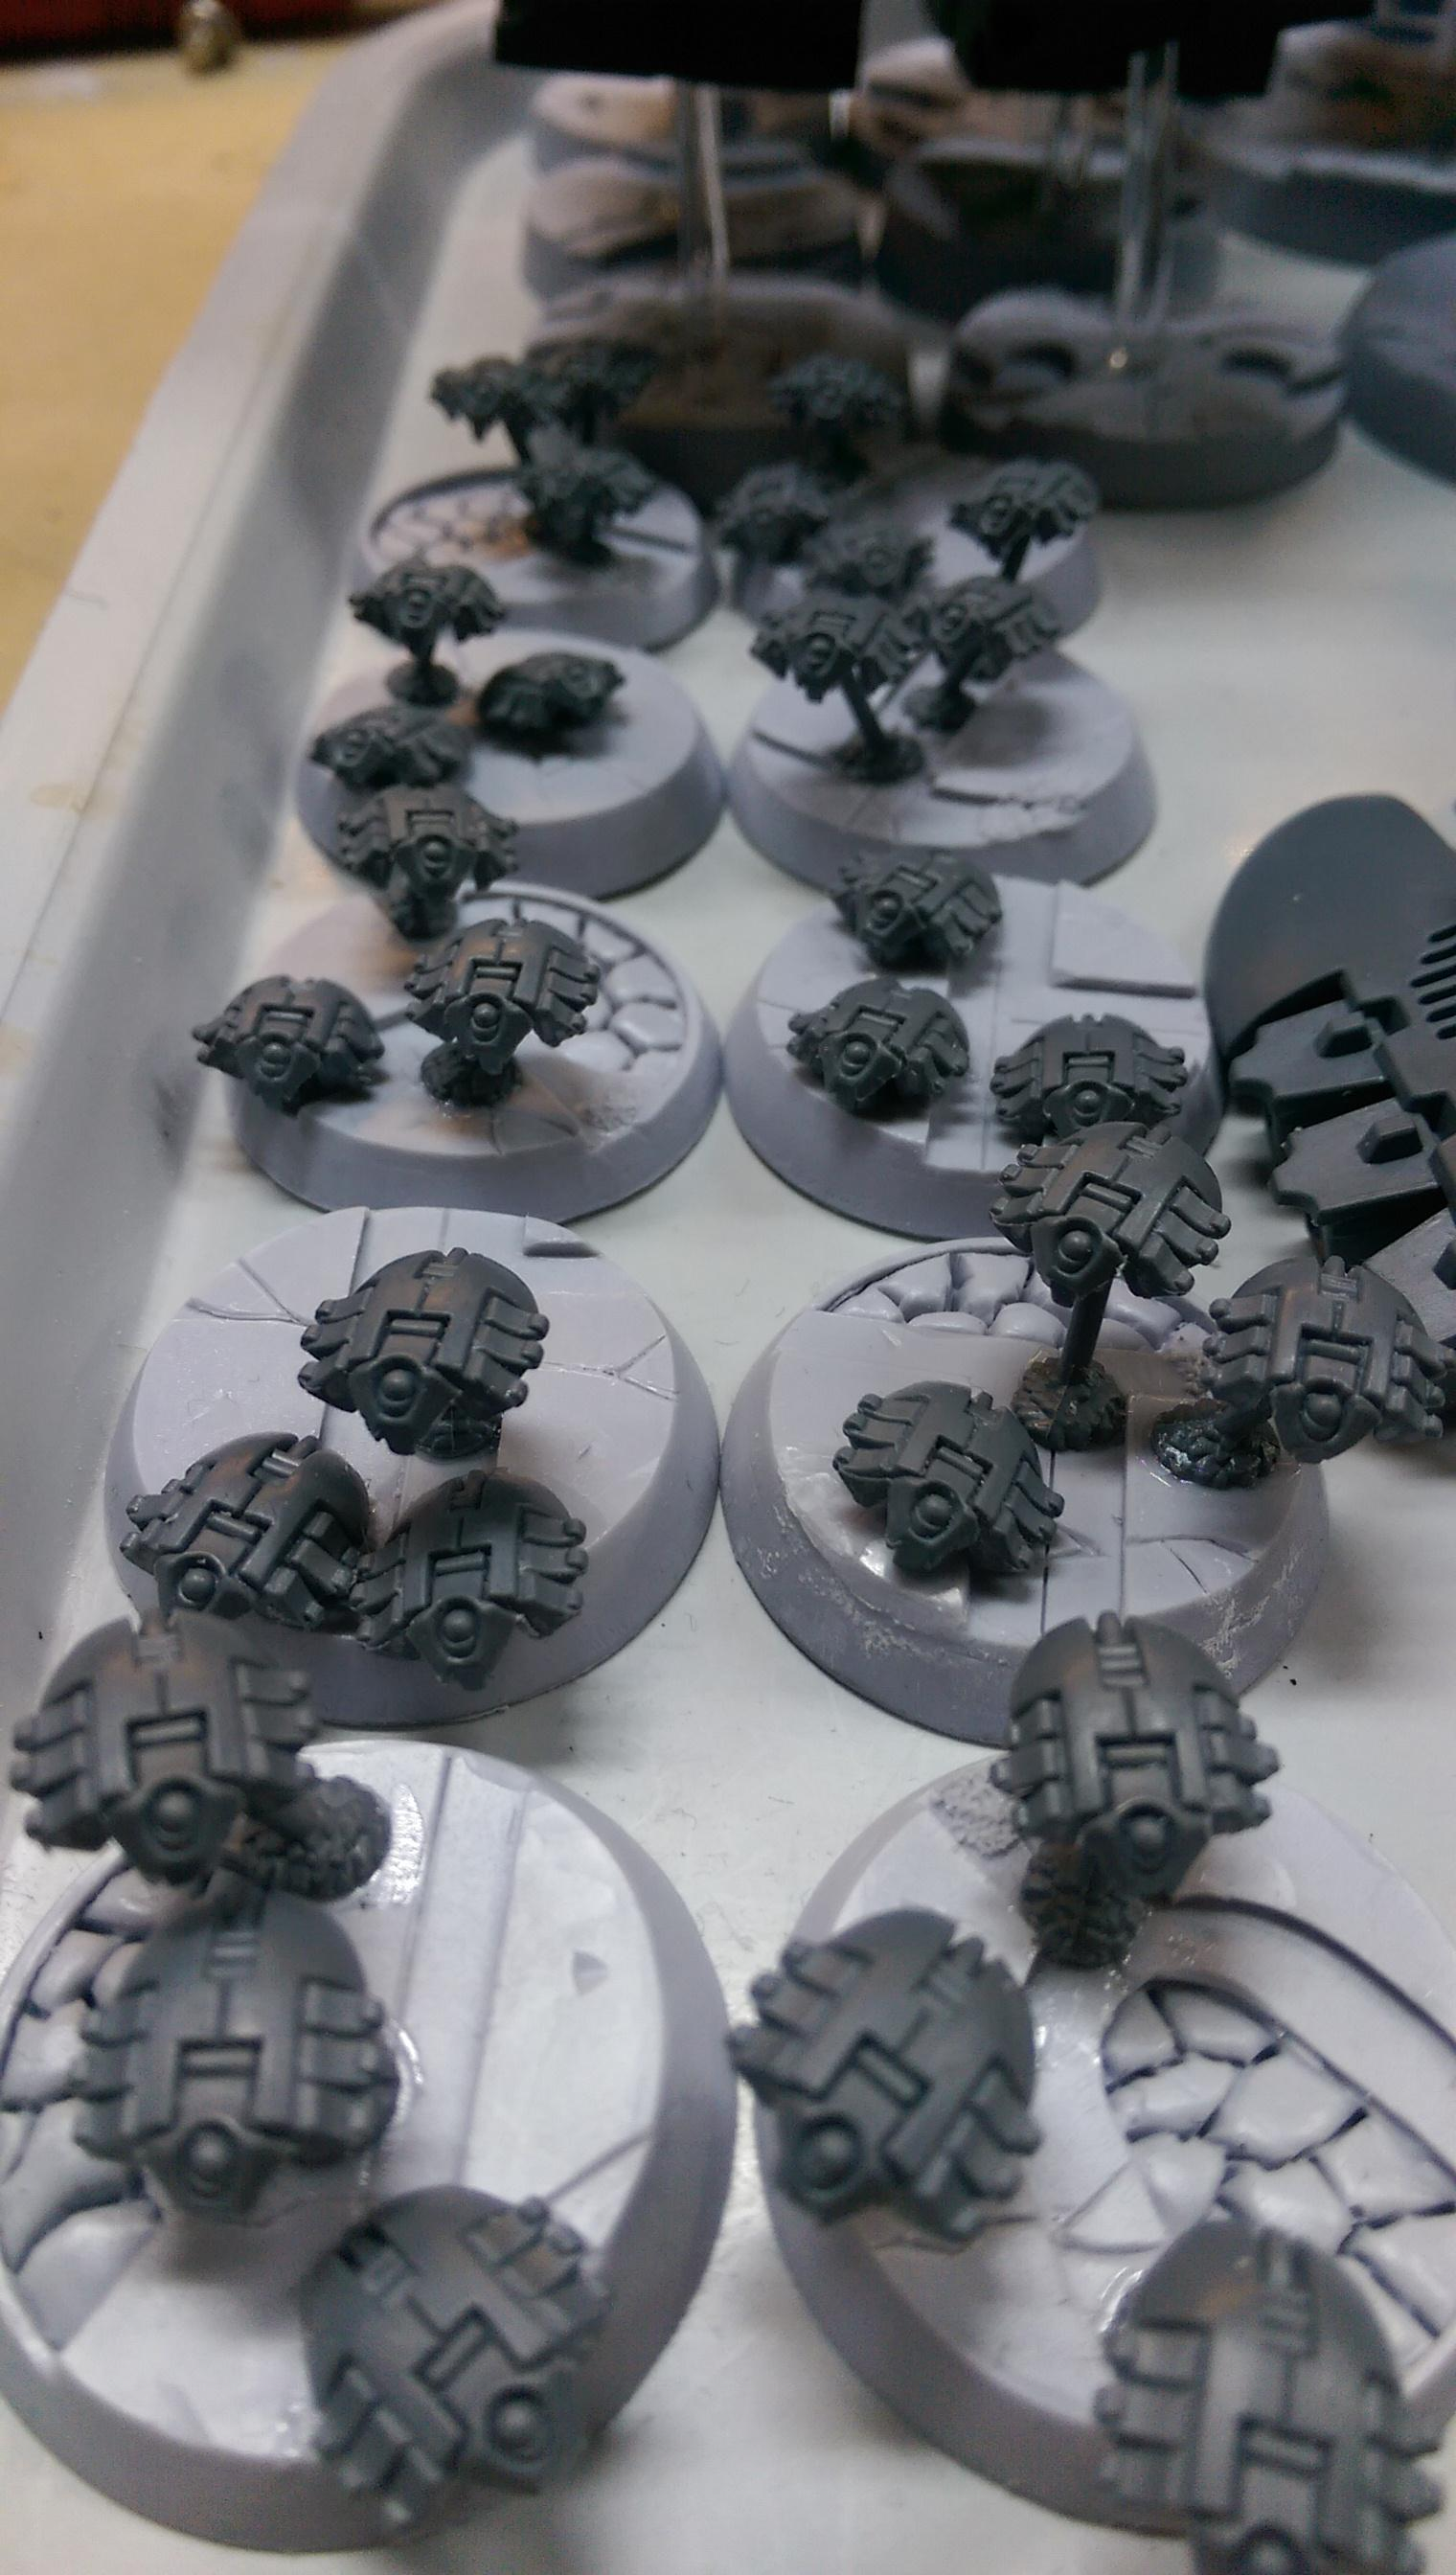 Assembly, Base, Necrons, Phlanax, Warhammer 40,000, Work In Progress